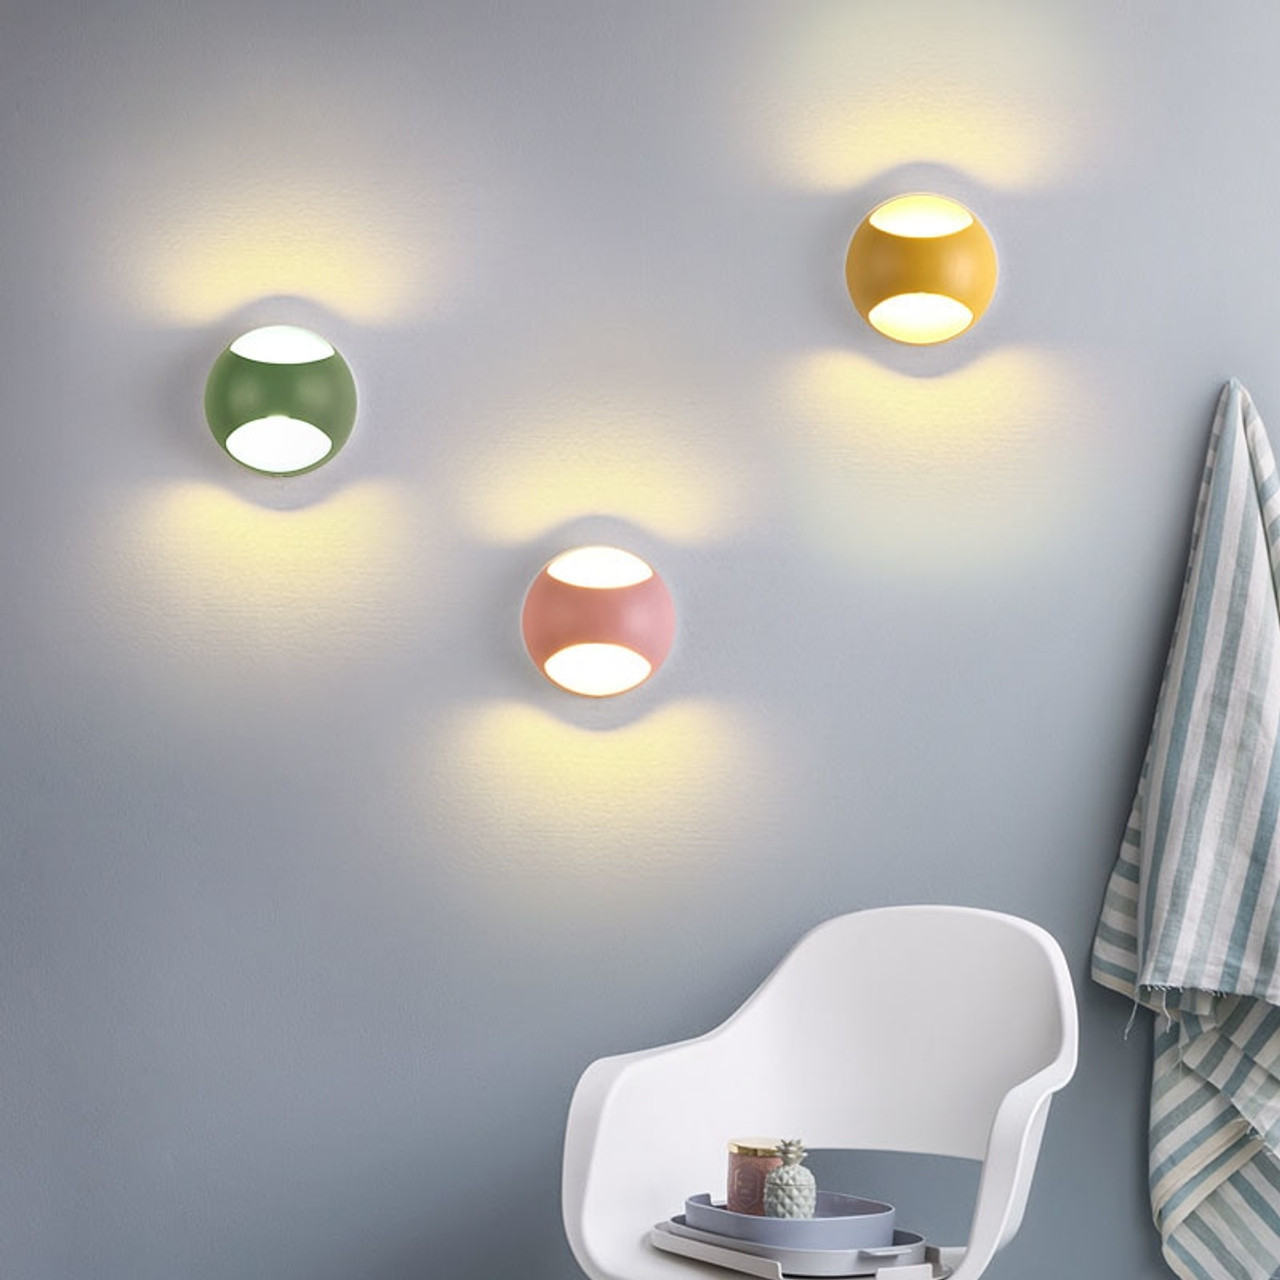 Led wall lamps 5w 100v 220v living room light fixtures indoor wall lights chromatic background kids room stair mirror lighting